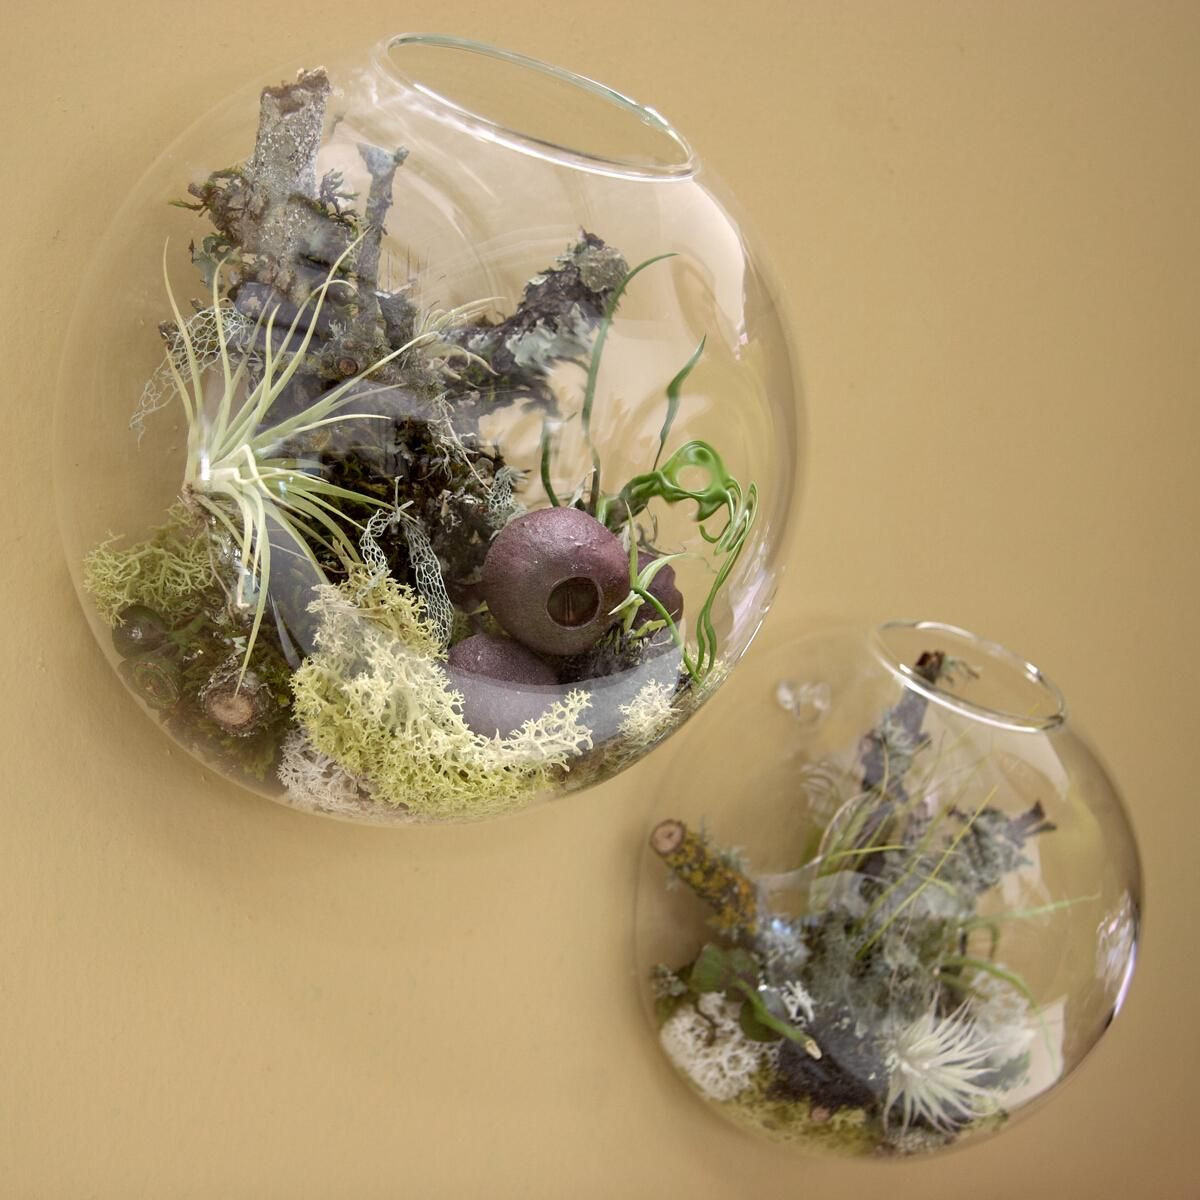 fish and plants in a vase of wall bubble terrariums glass wall vase for flowers indoor plants with regard to 3pcs set air plant wall glass terrariumwall bubble terrariumwall plantersfighting fish tank for wall decorhome decorationgreen gifts